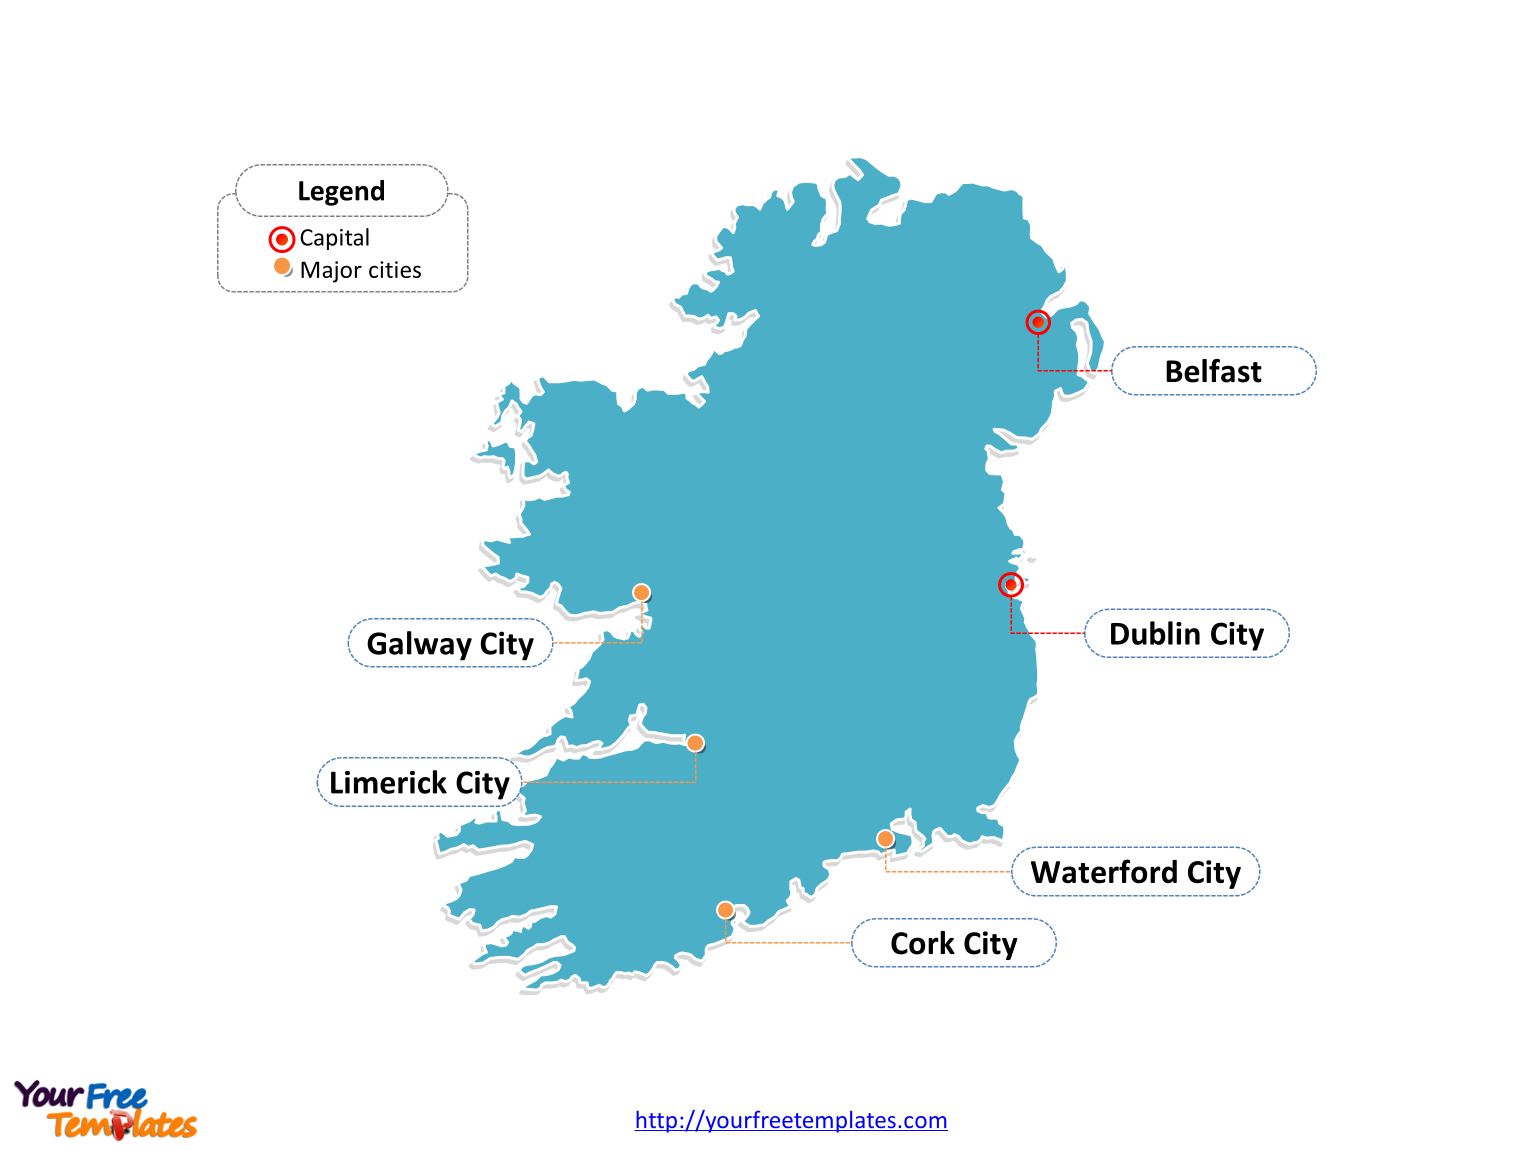 Map Of Ireland With Major Cities.Free Ireland Island Editable Map Free Powerpoint Templates